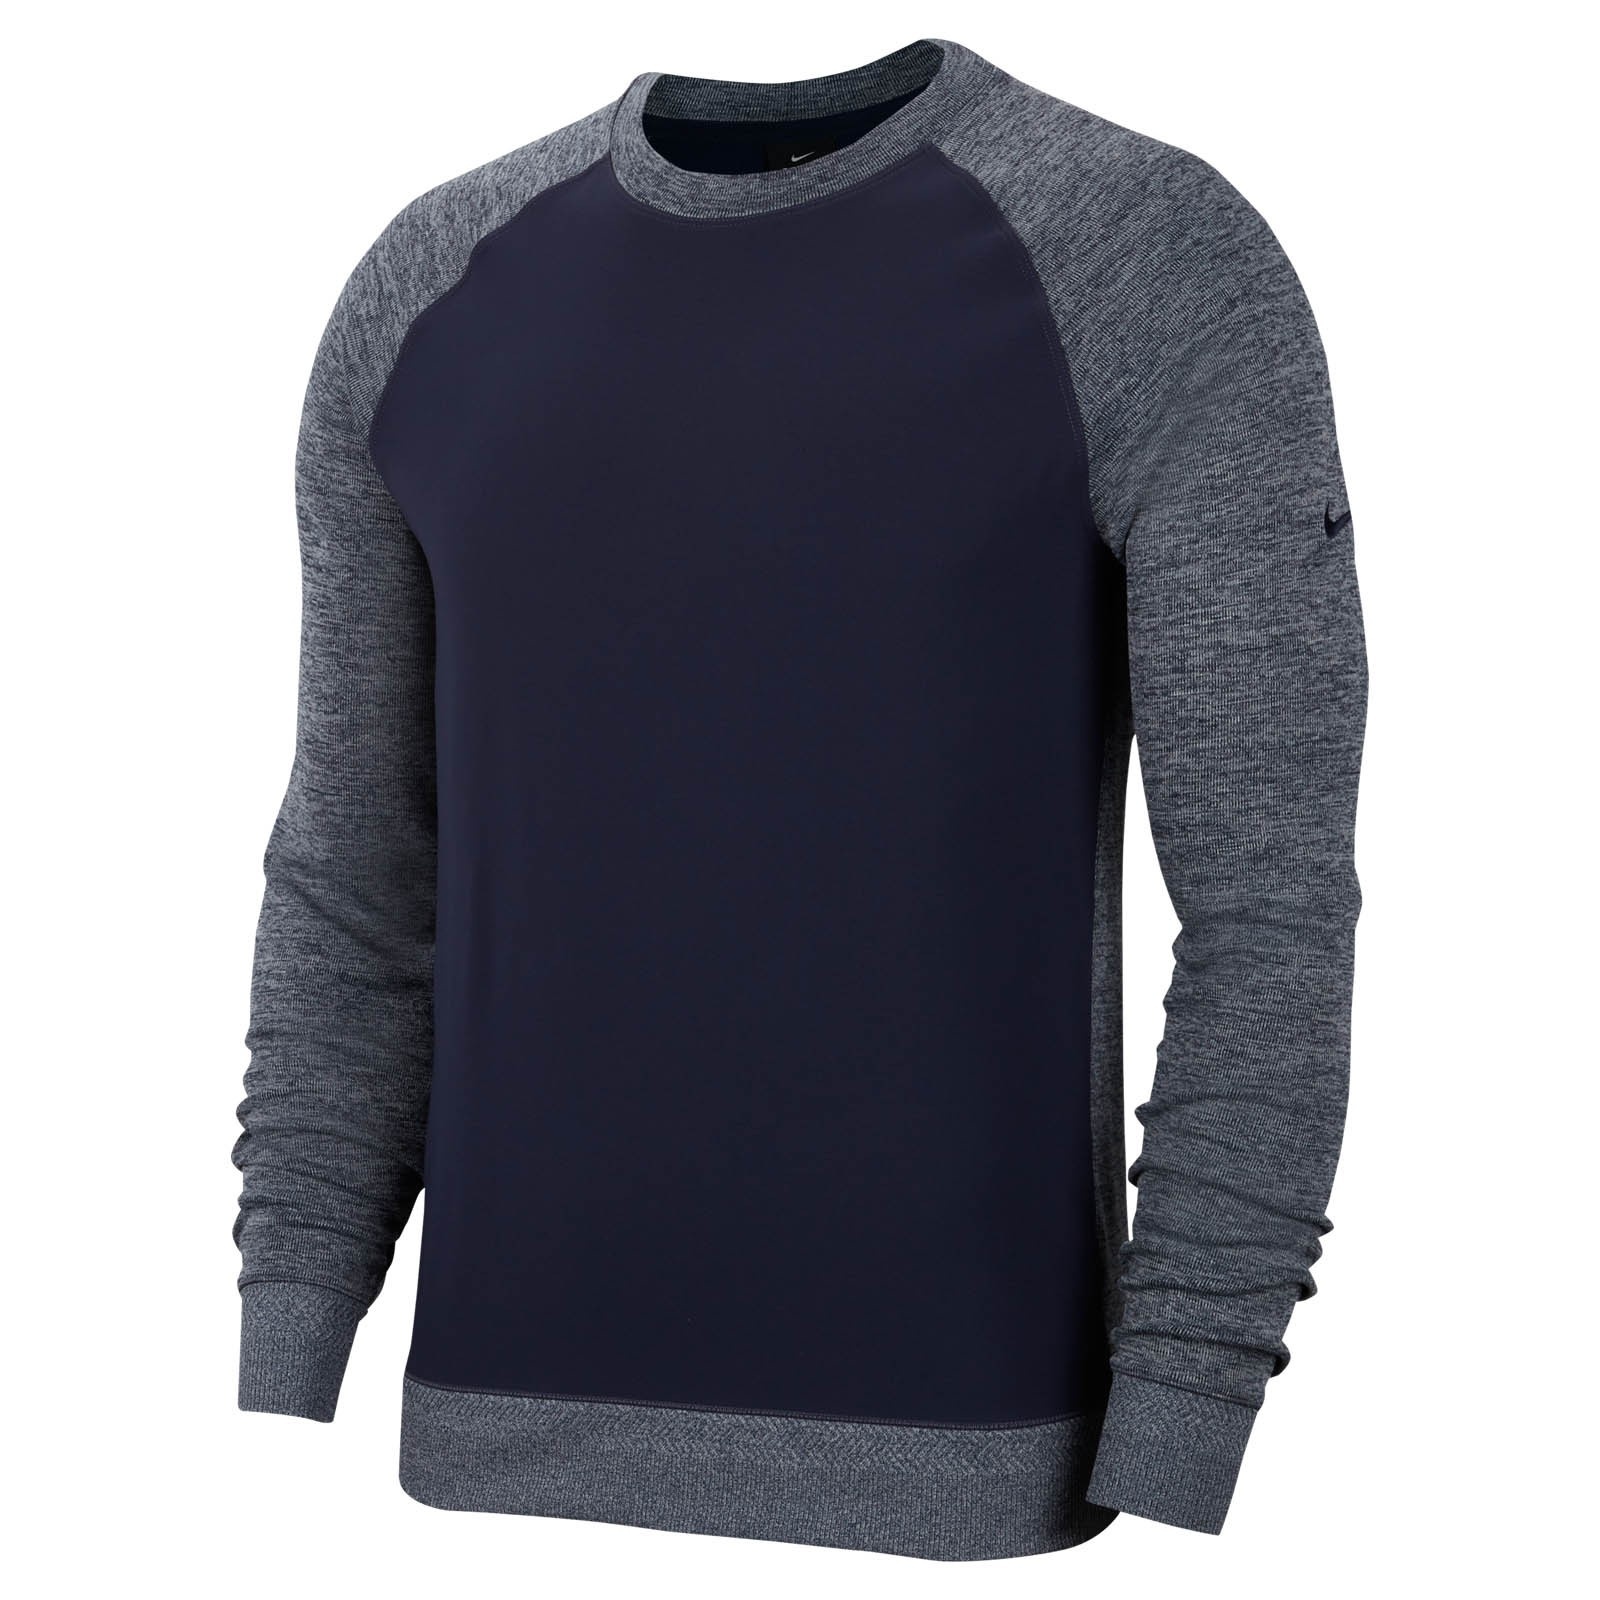 Nike Dry-Fit Long Sleeve Player Crew